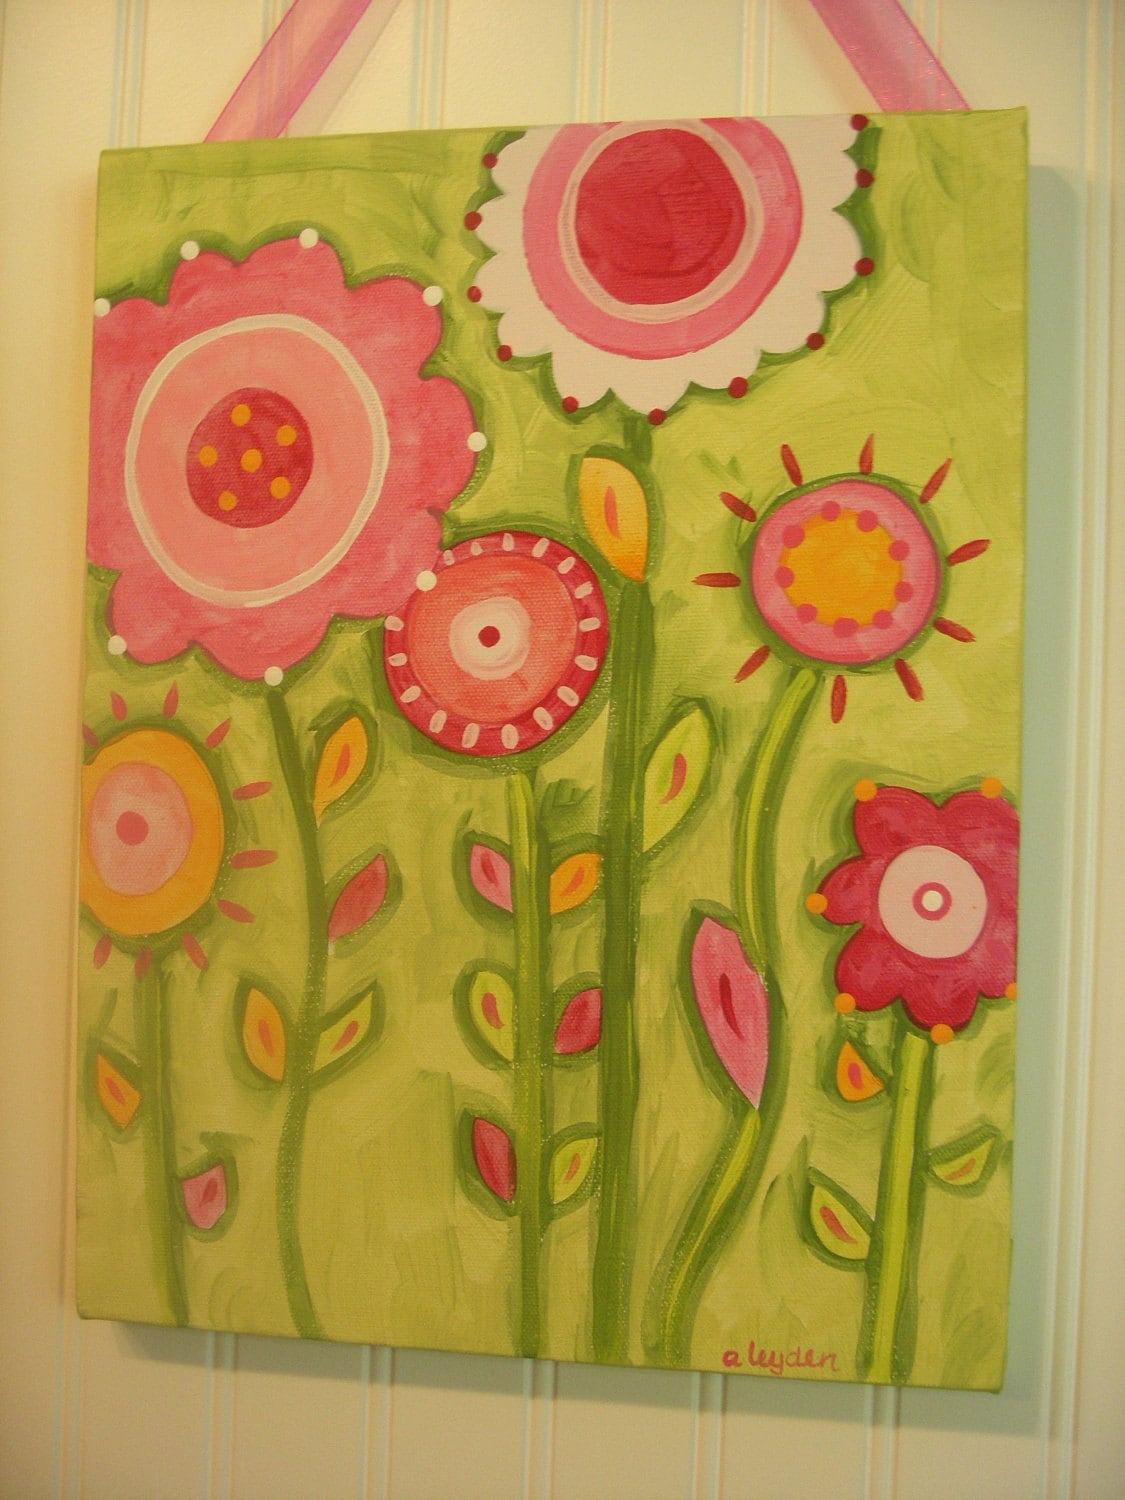 Flower garden canvas painting 11 x 14 Original hand painted